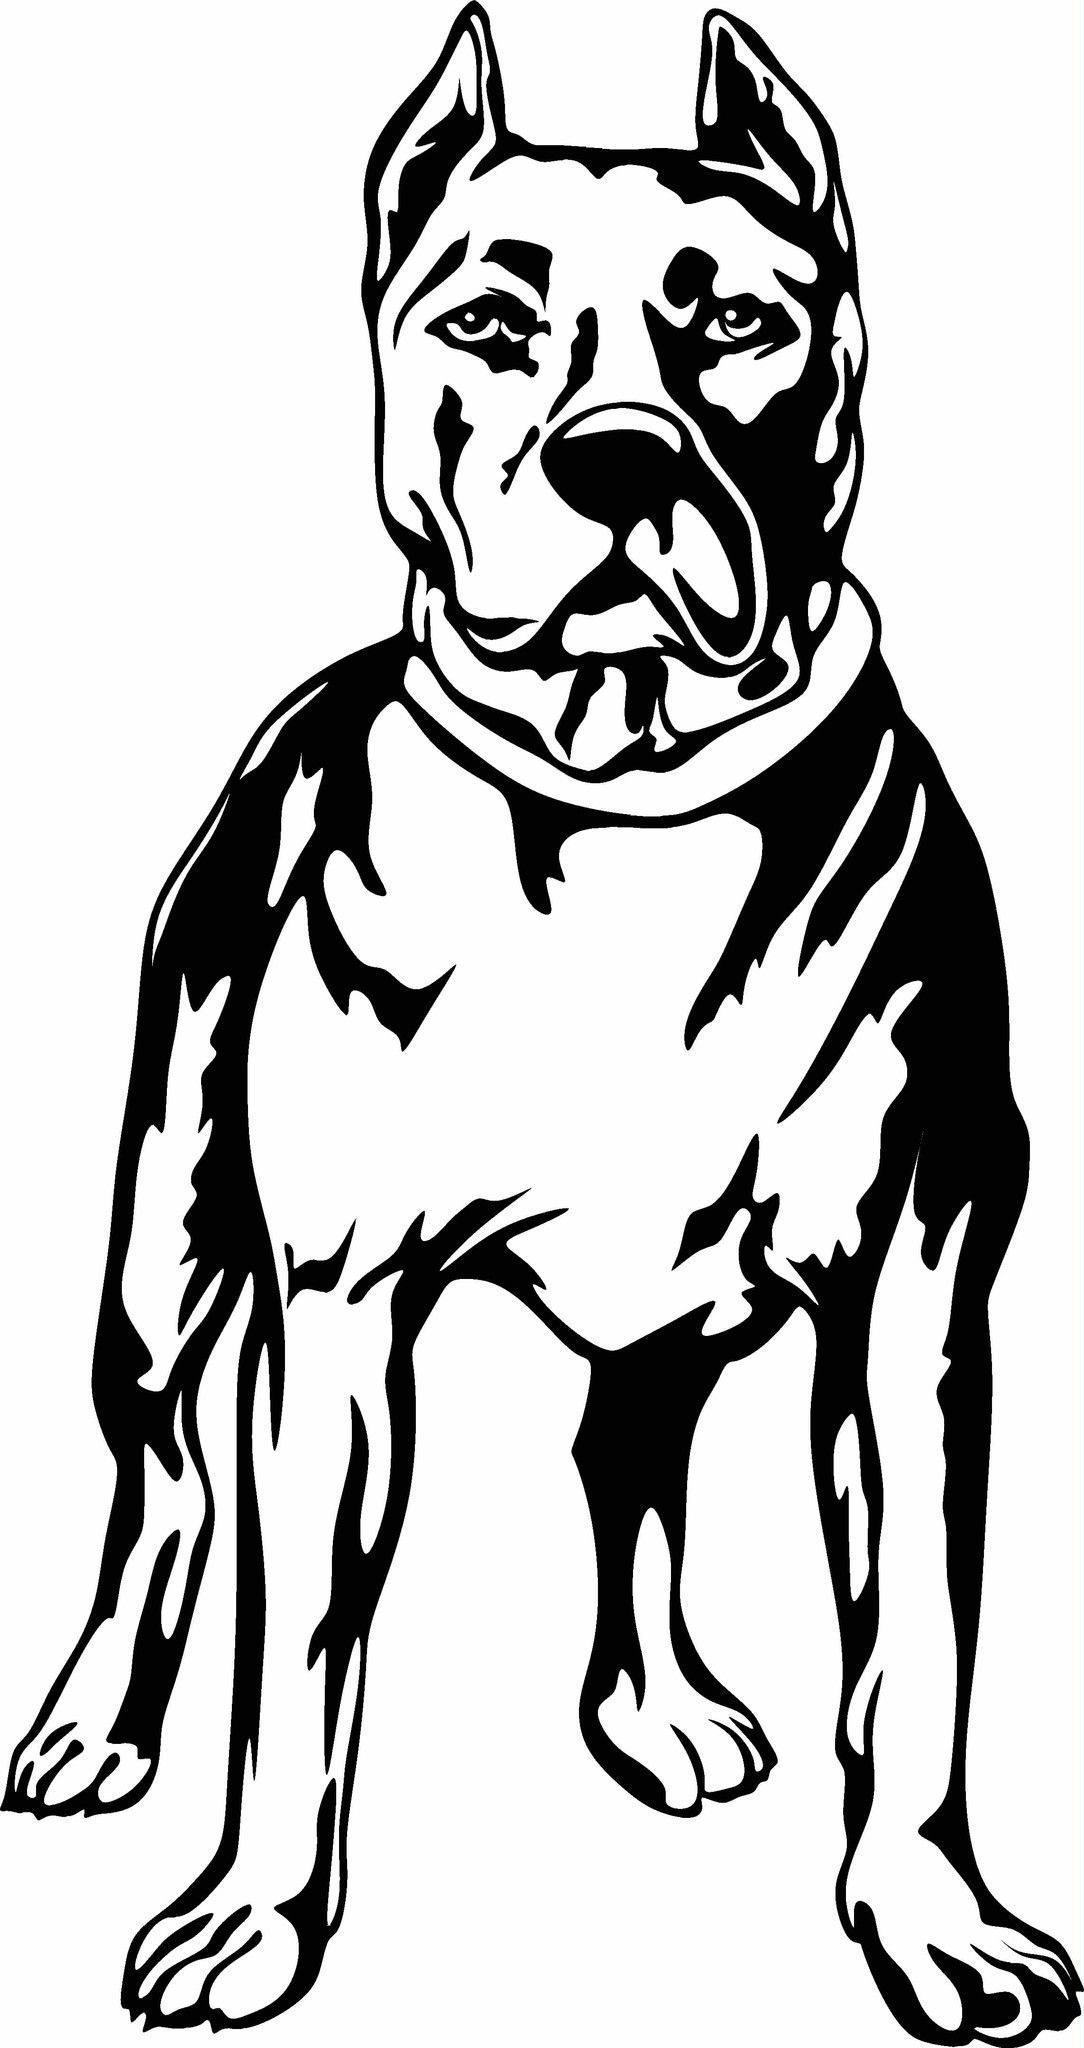 1084x2048 Pit Bull Standing Vinyl Cut Out Decal, Sticker